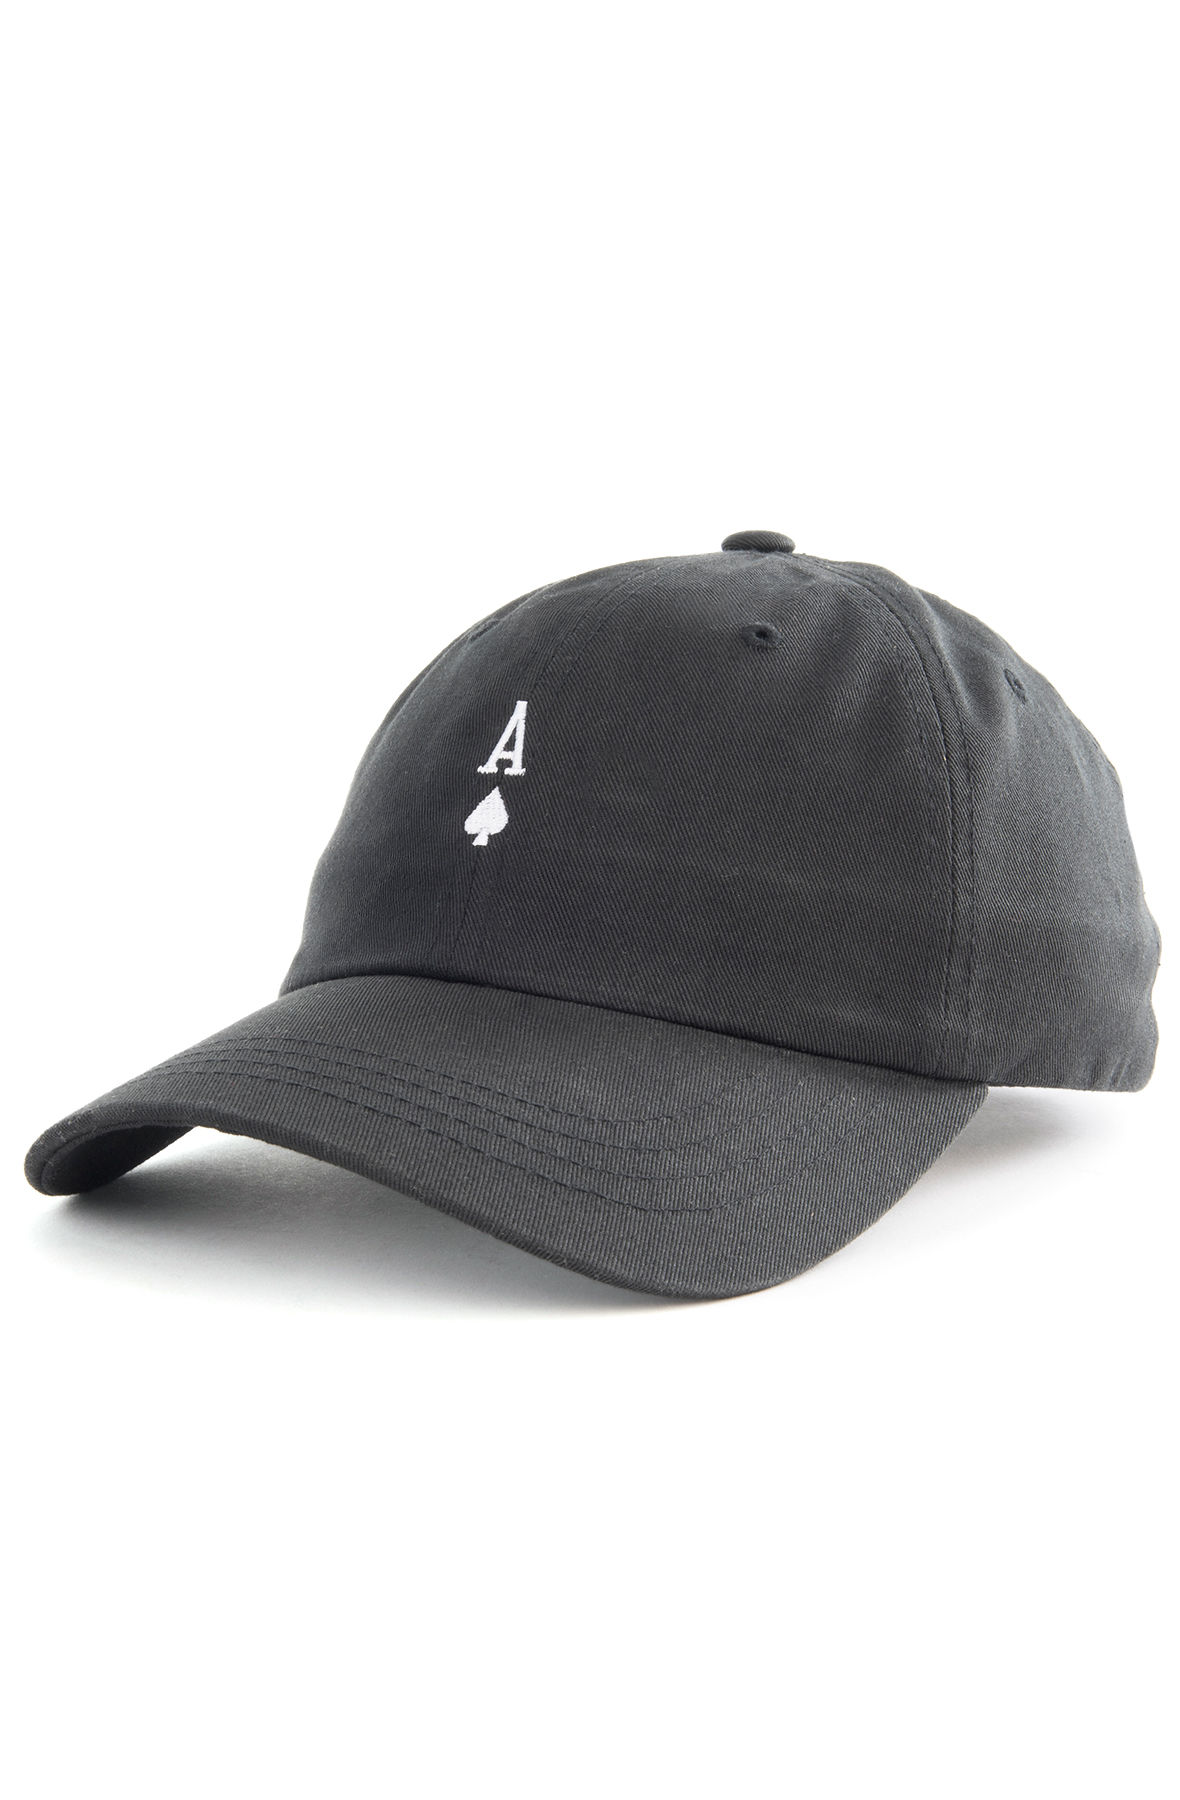 Image of The Ace of Spades Dad Hat in Black